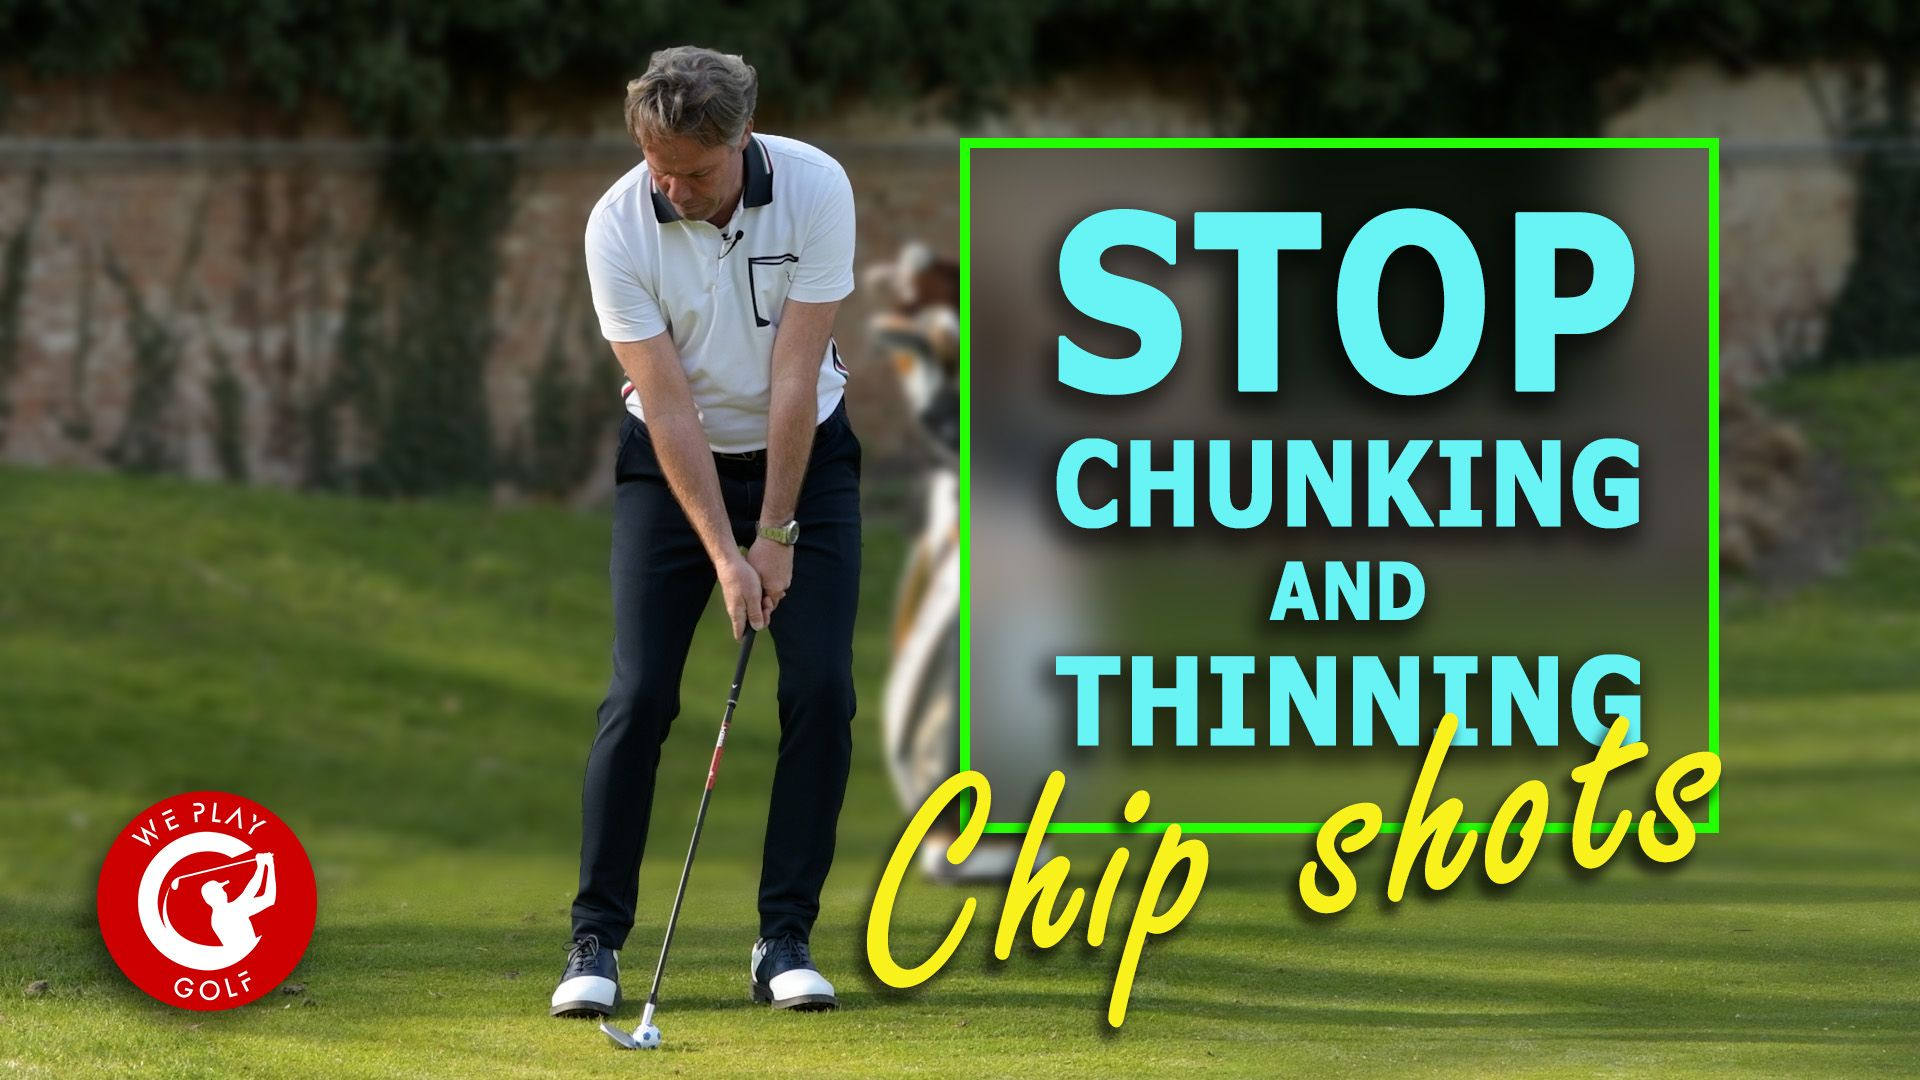 Videotip: Tips voor de perfecte chip rond de green - Blog